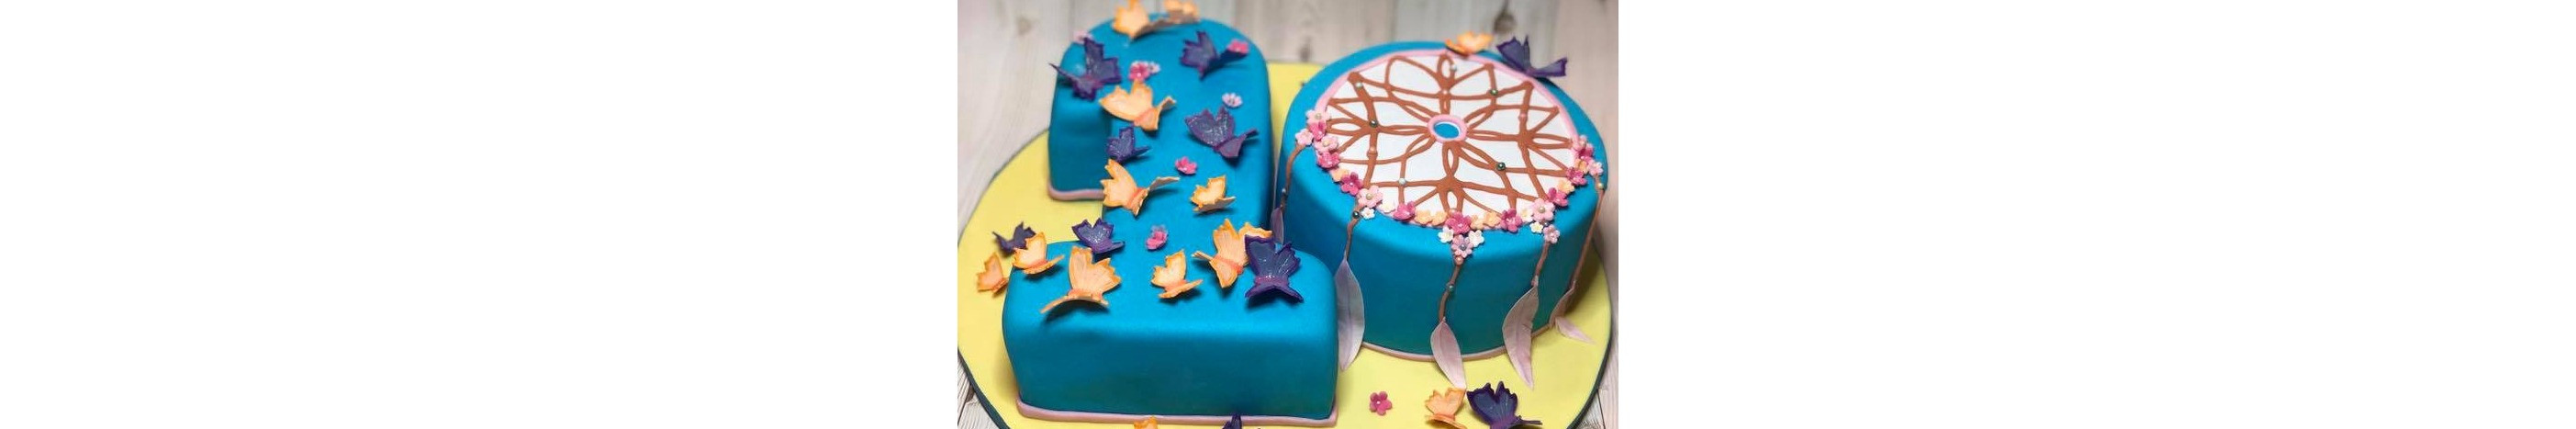 Margies Cakery - Bespoke Cakes for Special Occasions